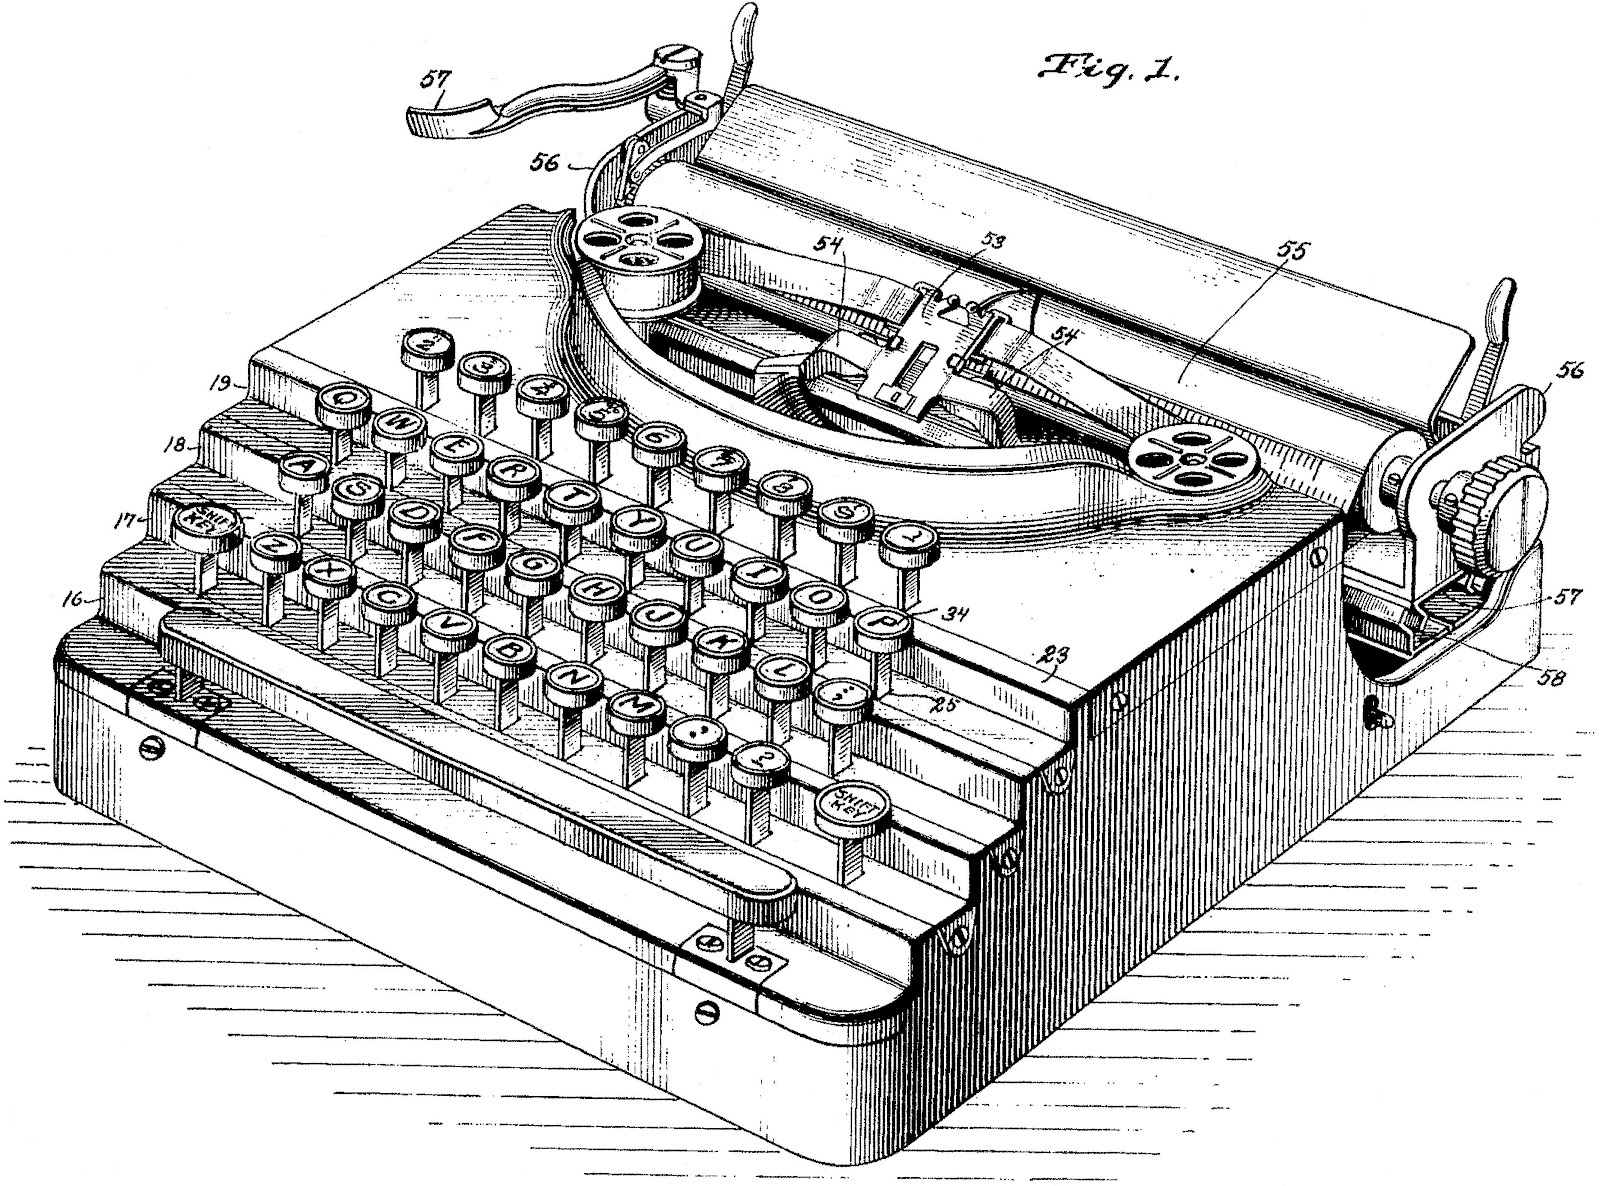 Oz Typewriter On This Day In Typewriter History V For Victor Or G For Gump The Garbell Portables